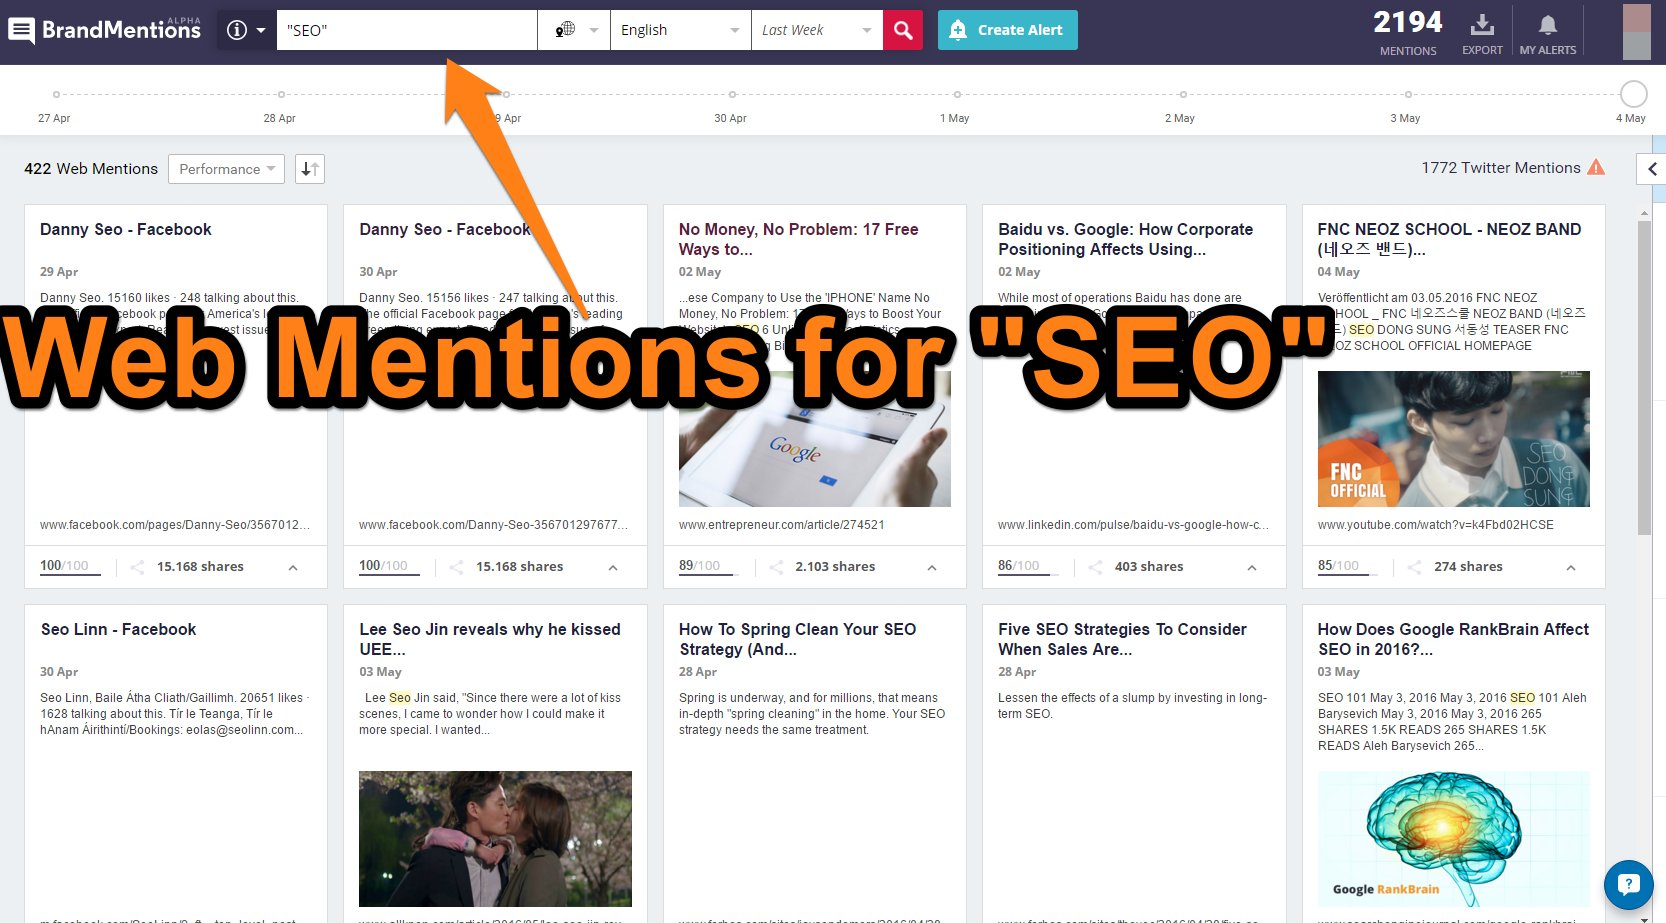 Web Mentions for SEO screen shot